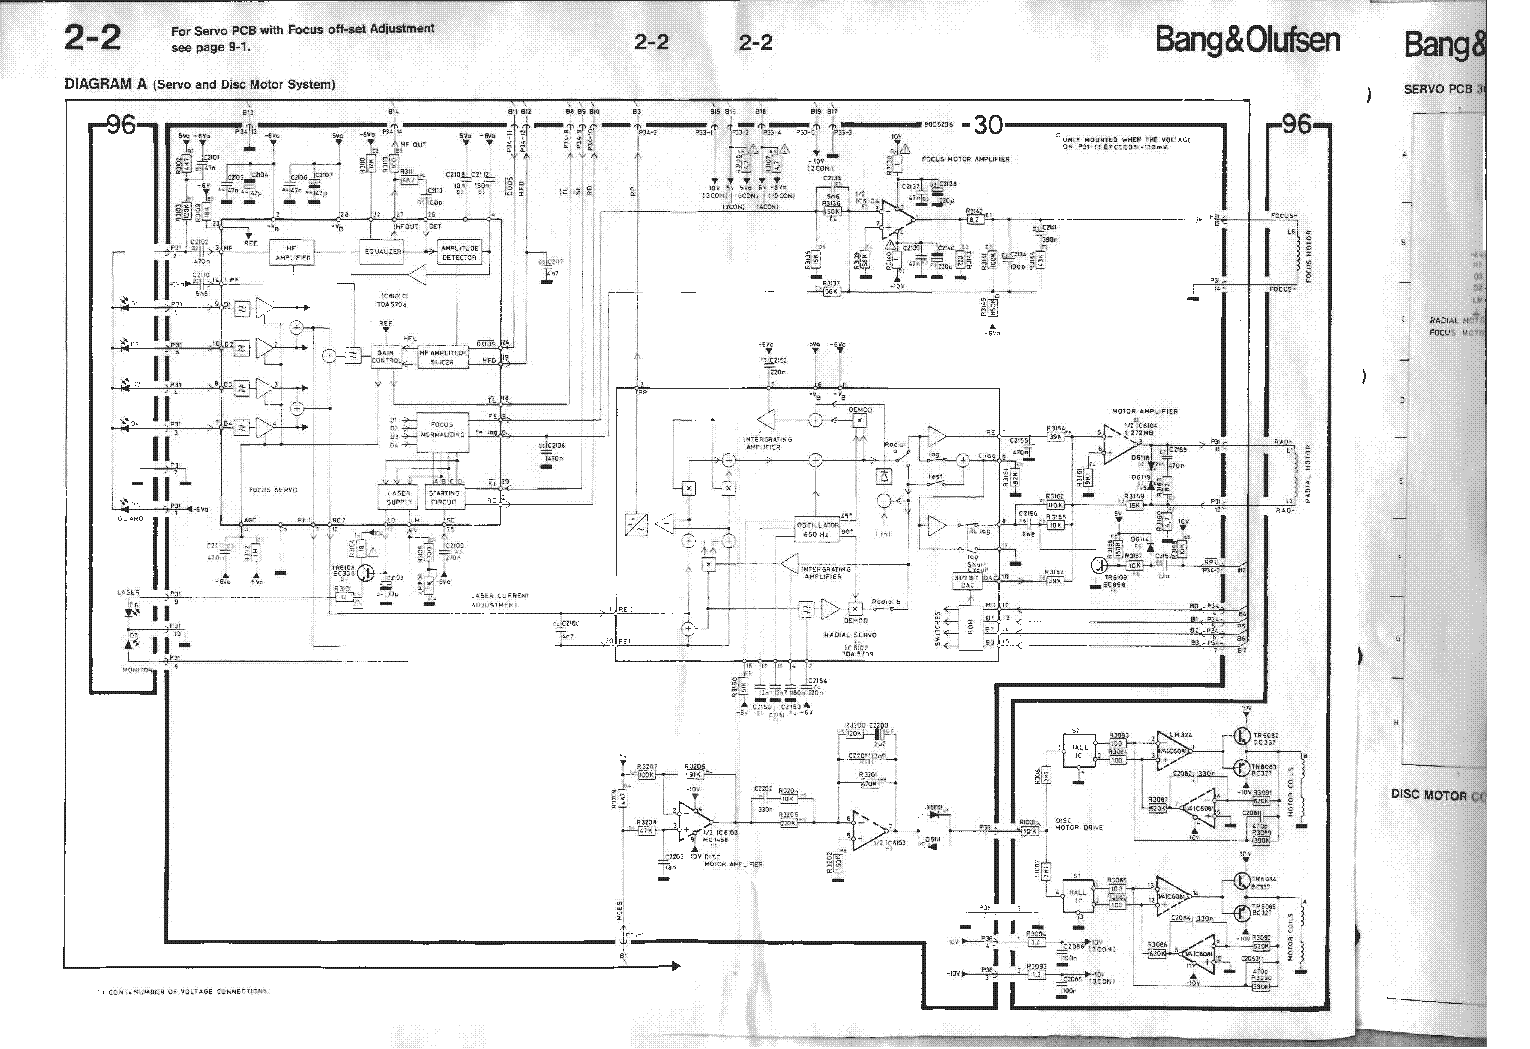 Bo Schematics The Wiring Diagram on free ford wiring diagrams online